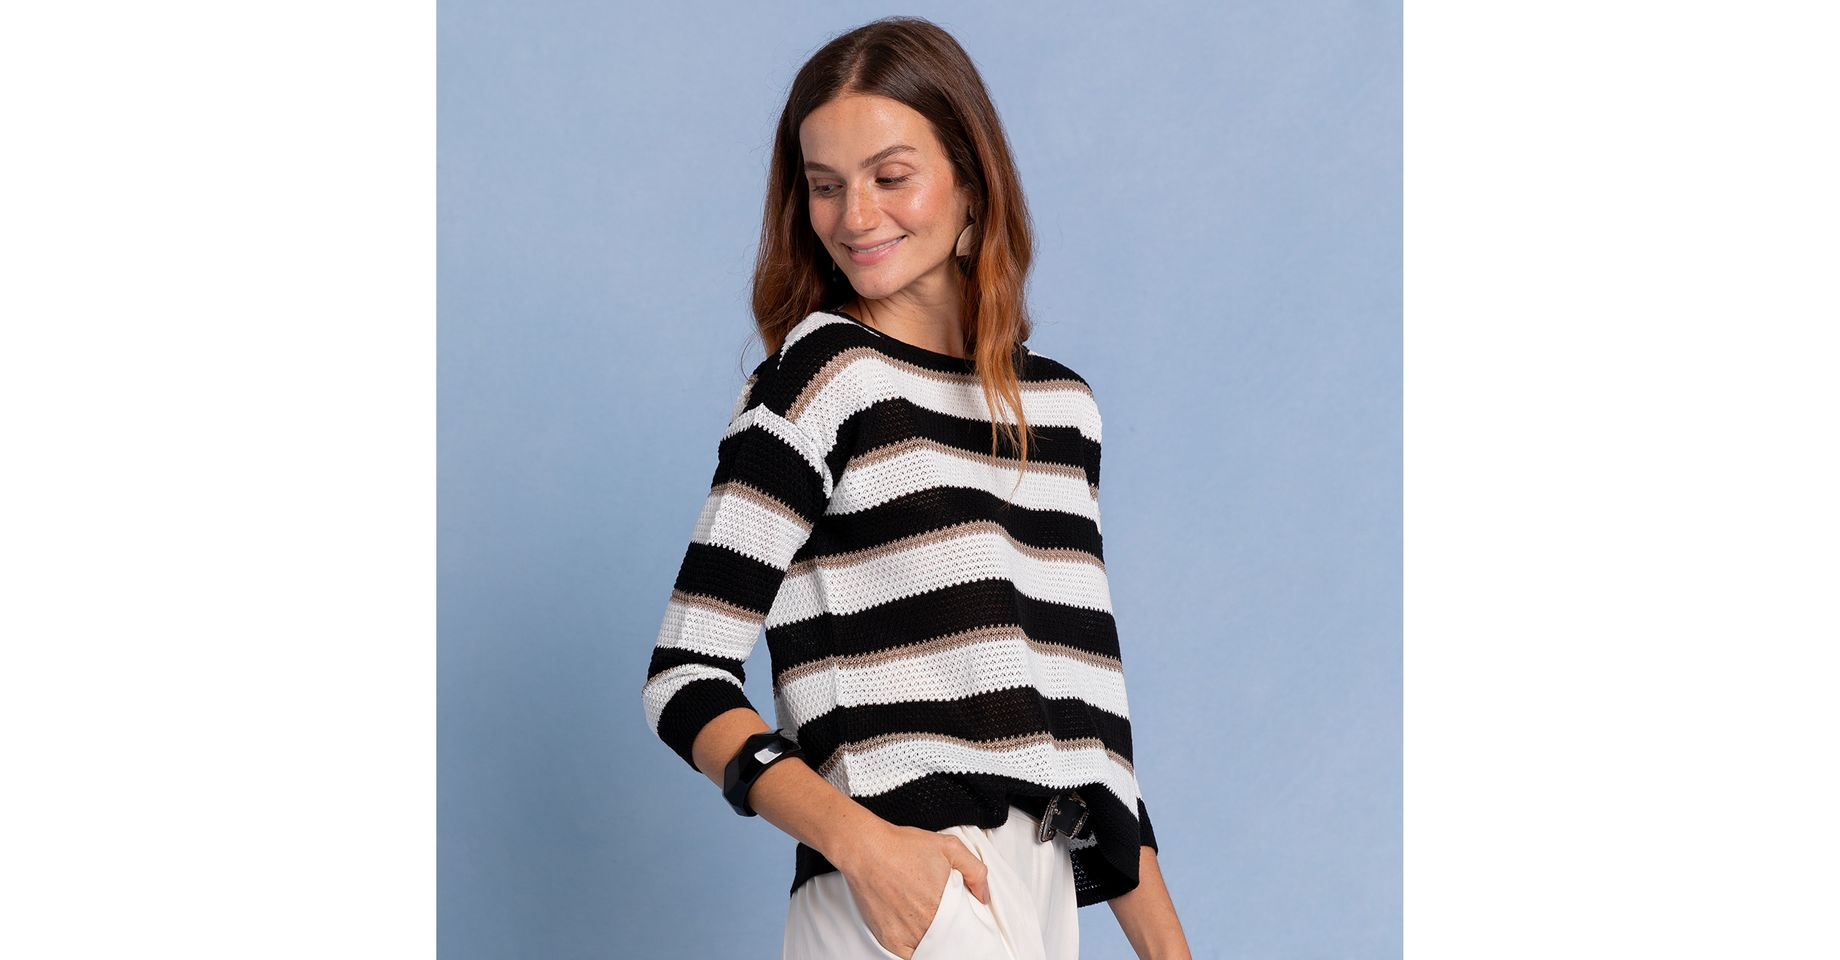 042401077_002_2-BLUSA-TRICOT-LOTHE